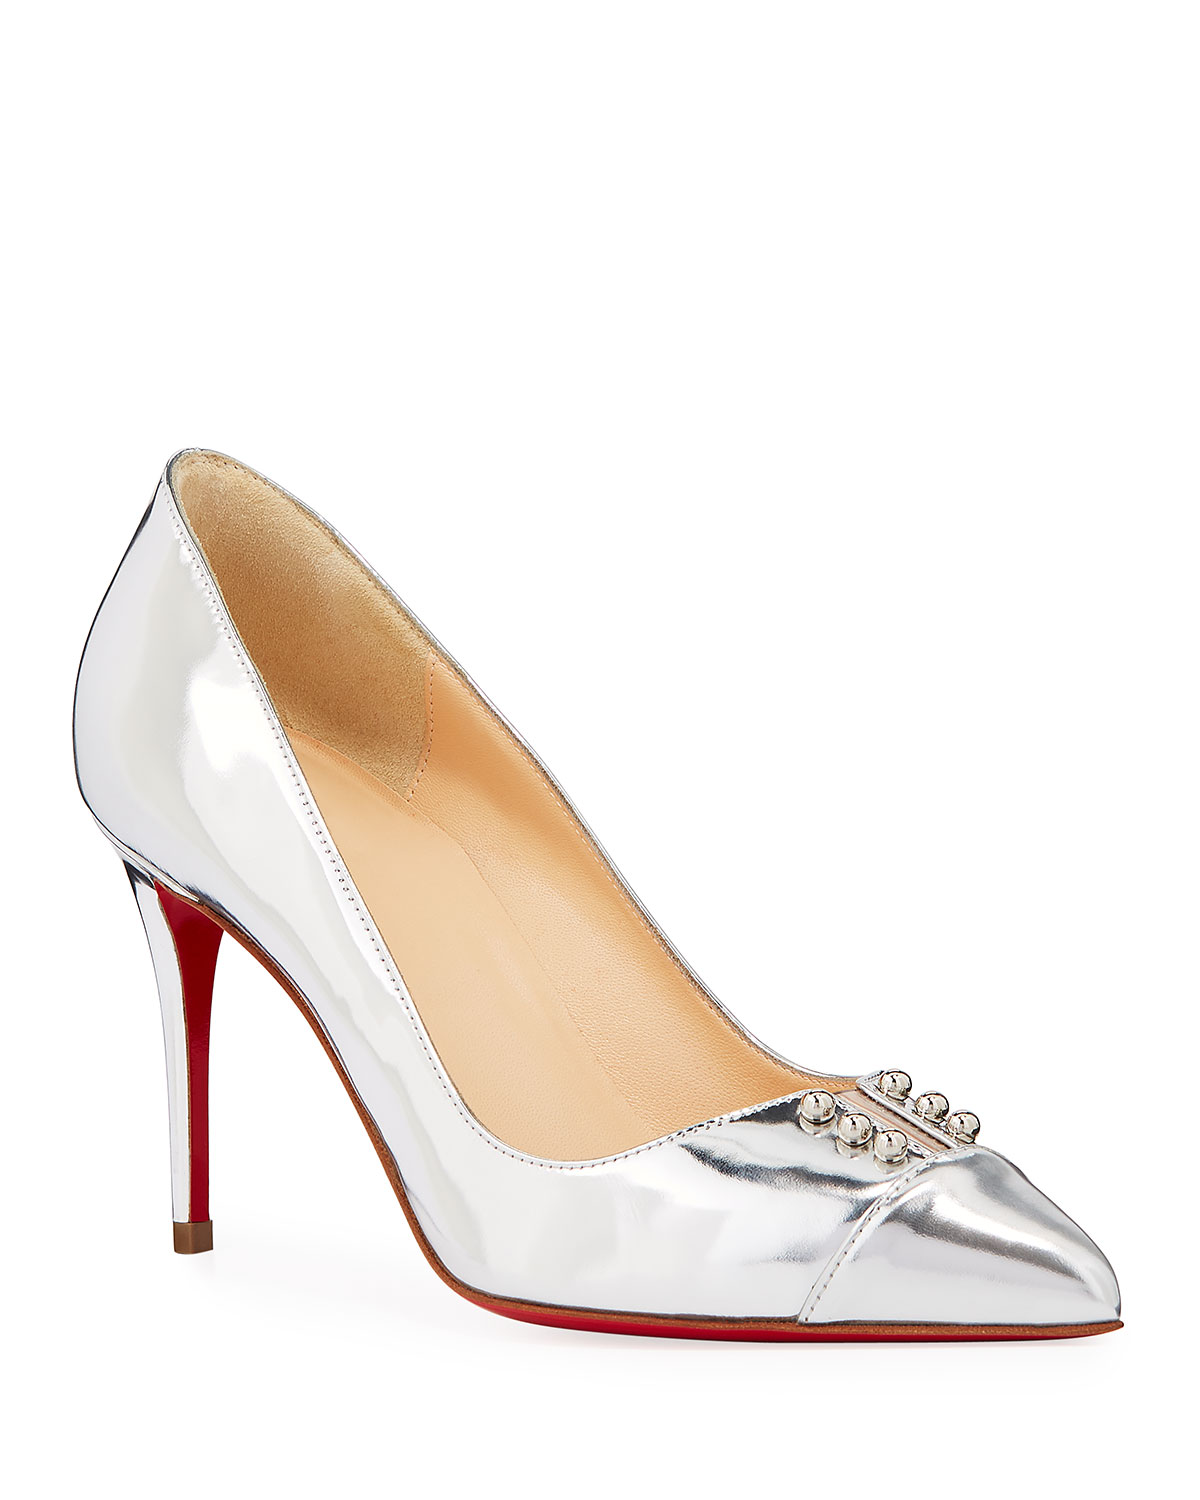 Christian Louboutin Leathers PREDU METALLIC LEATHER RED SOLE PUMPS